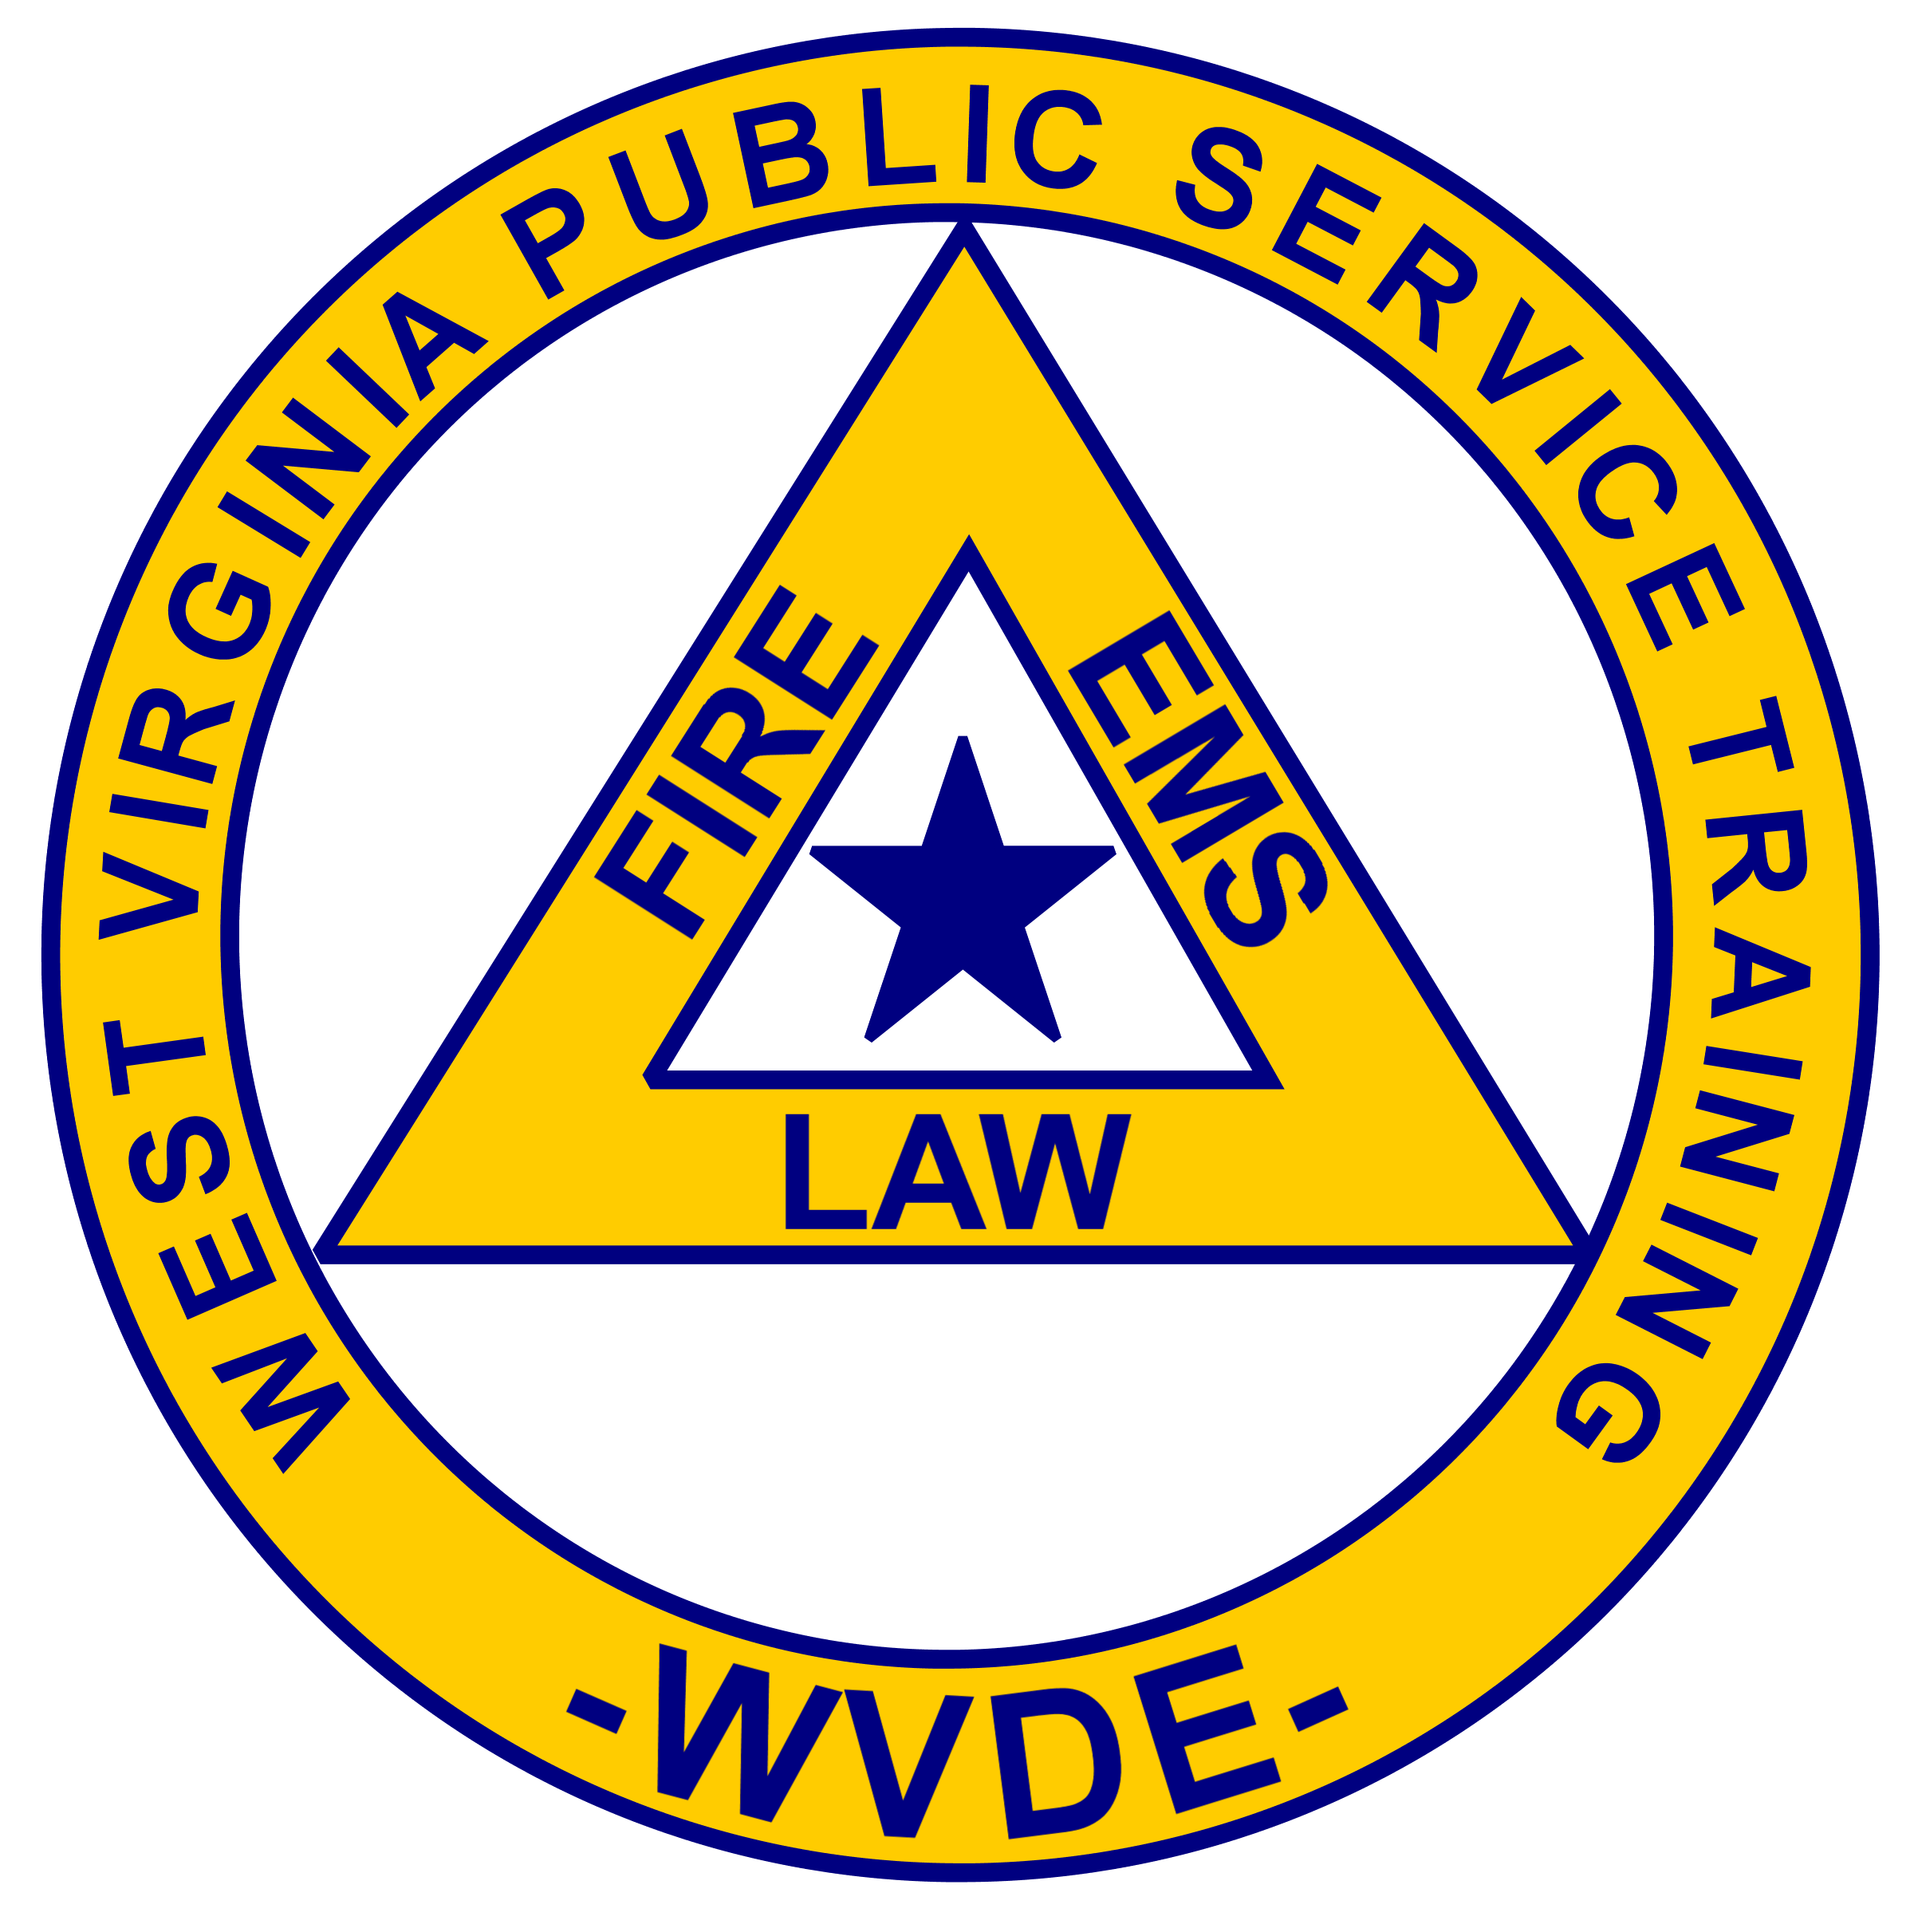 West Virginia Public Service Training logo